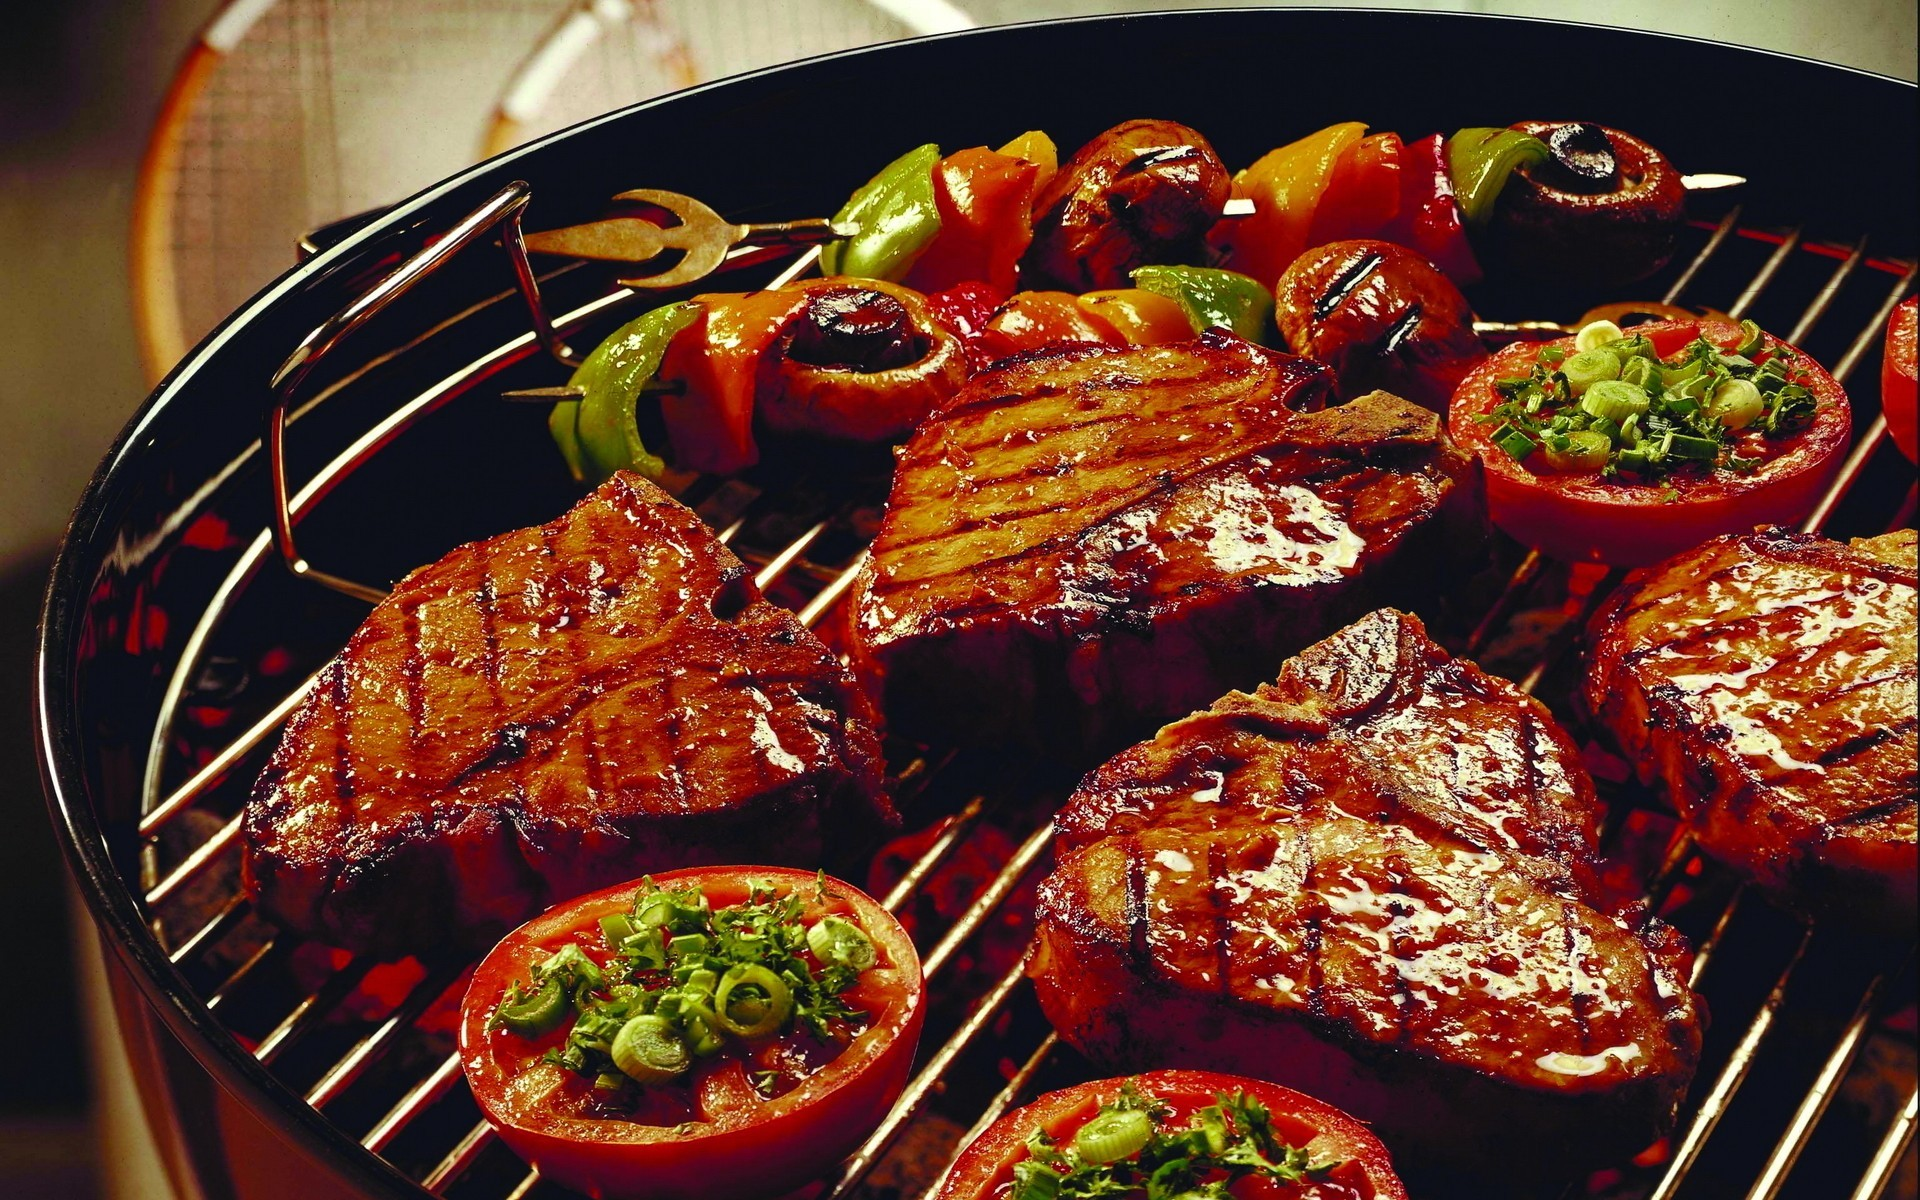 food meat barbeque barbecue HD Wallpaper